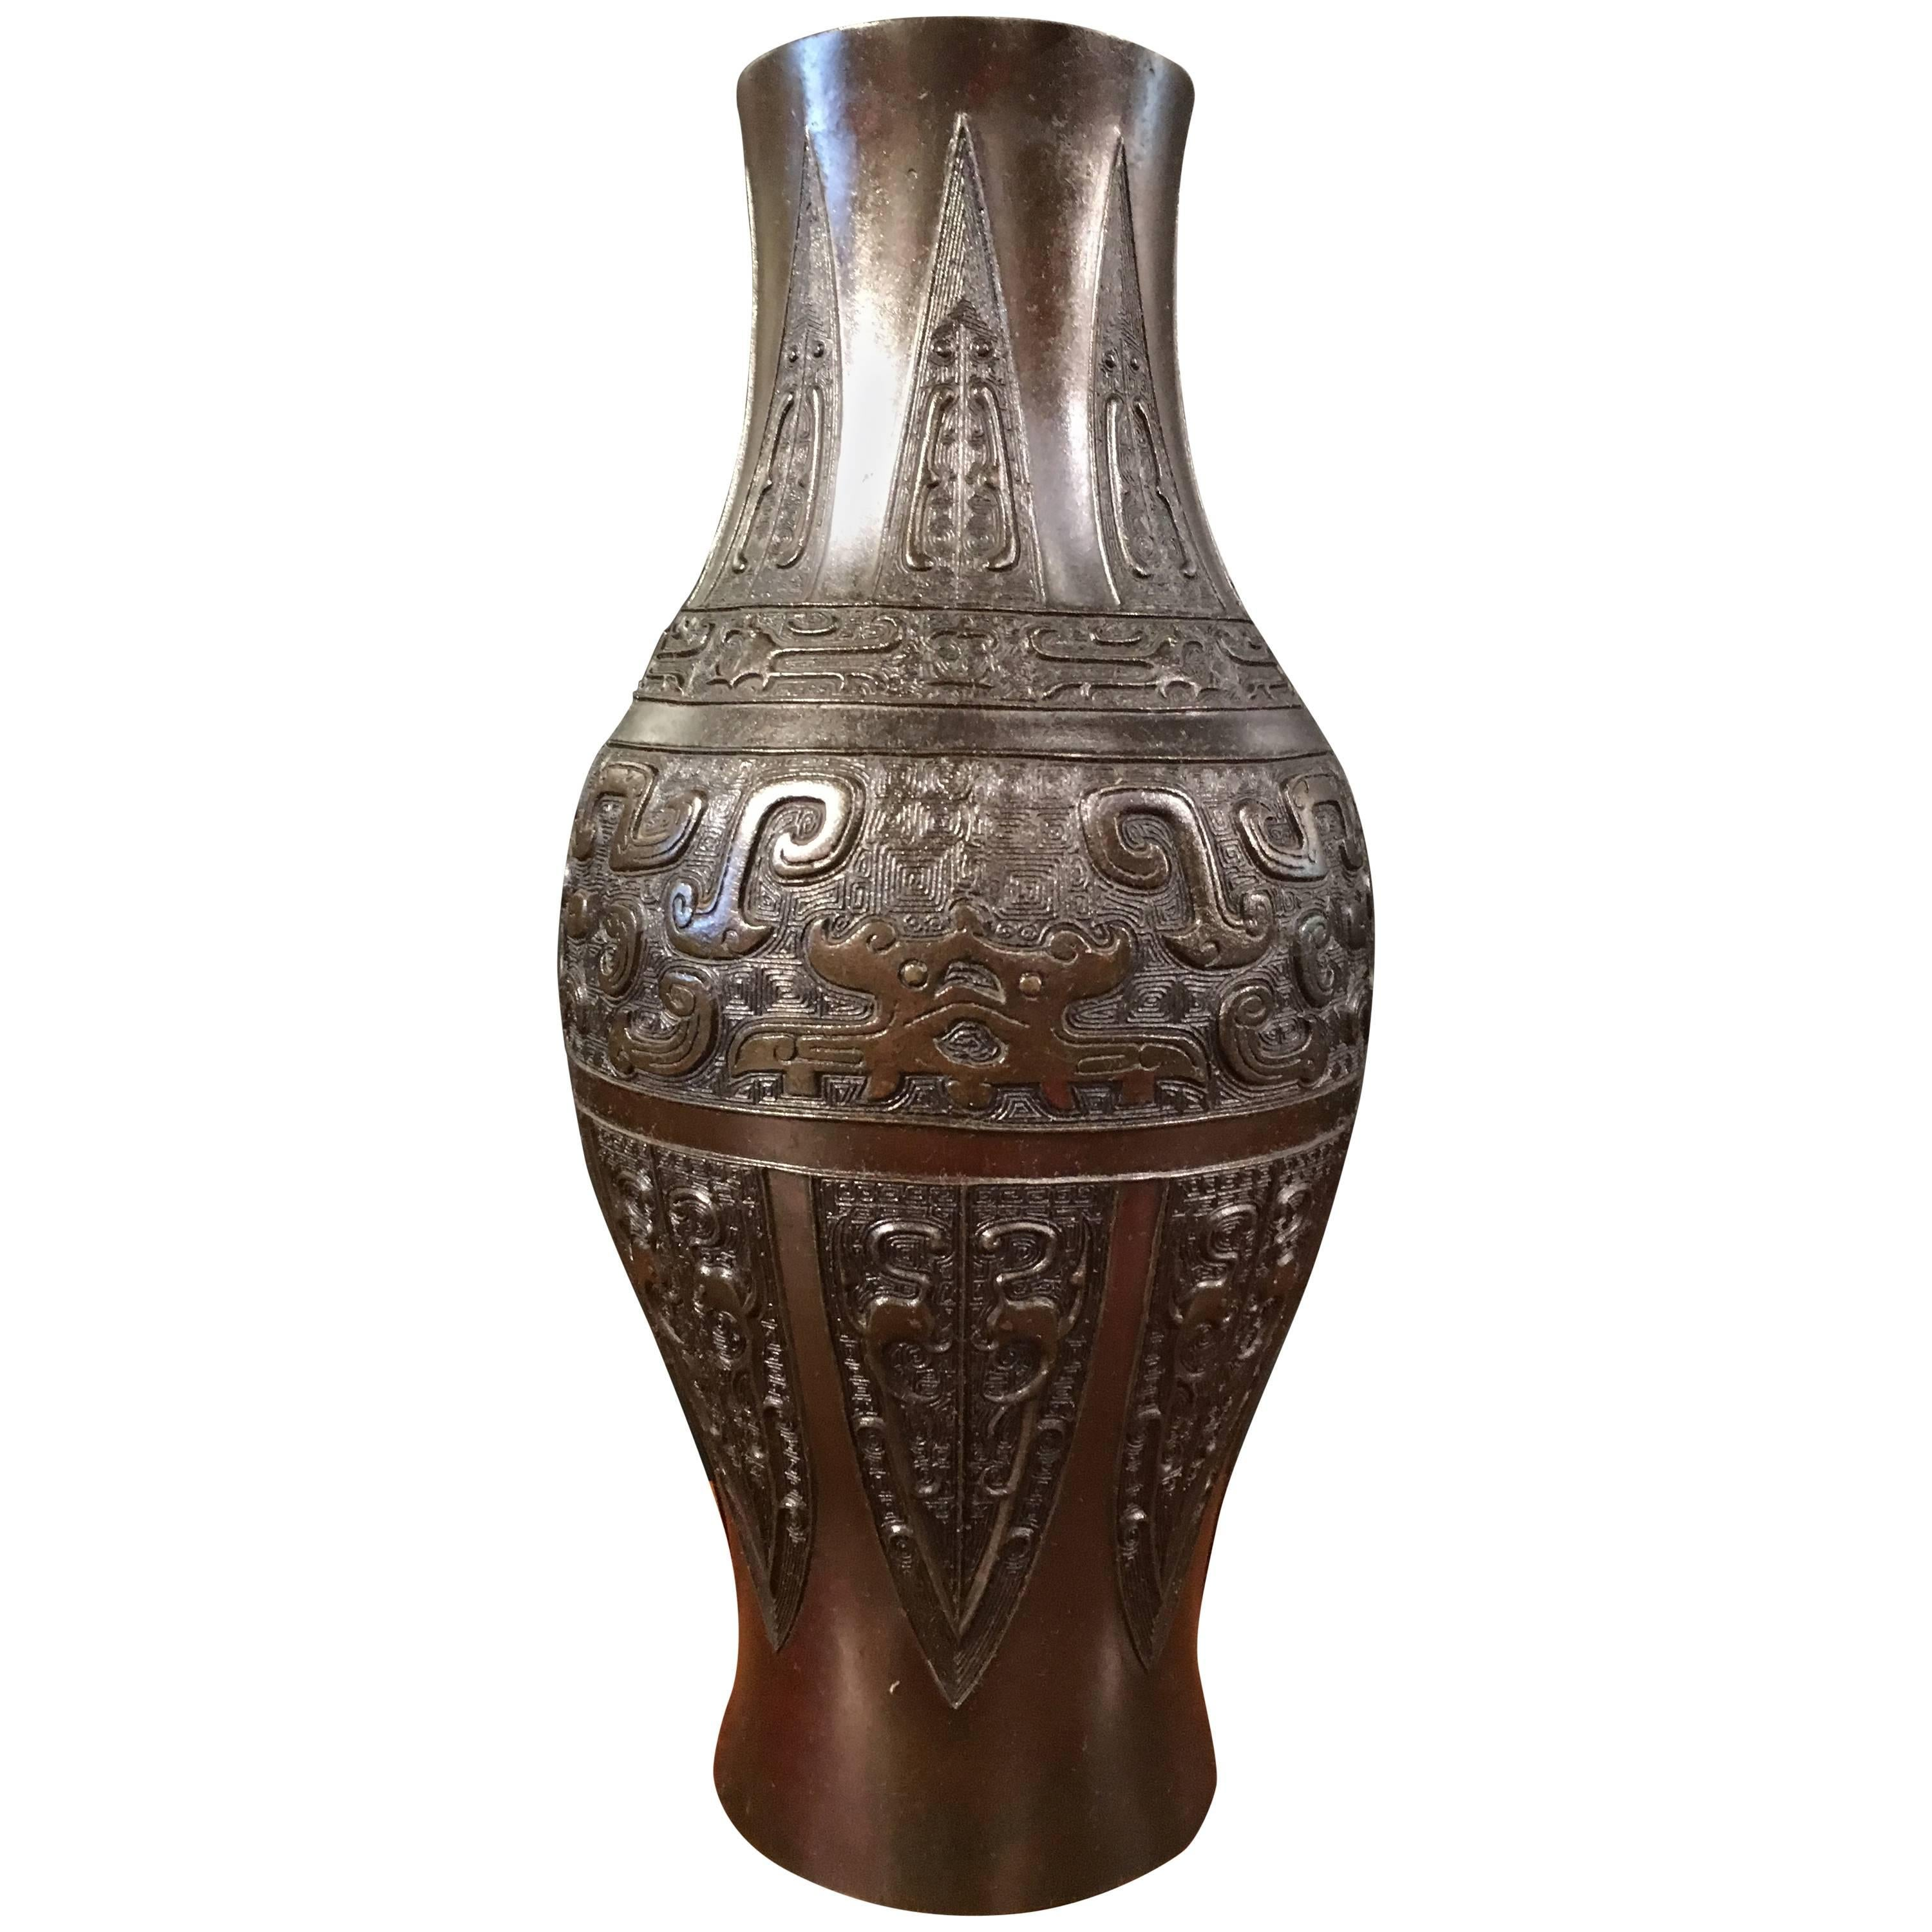 Chinese Qing Dynasty Archaistic Bronze Ovoid Baluster Vase